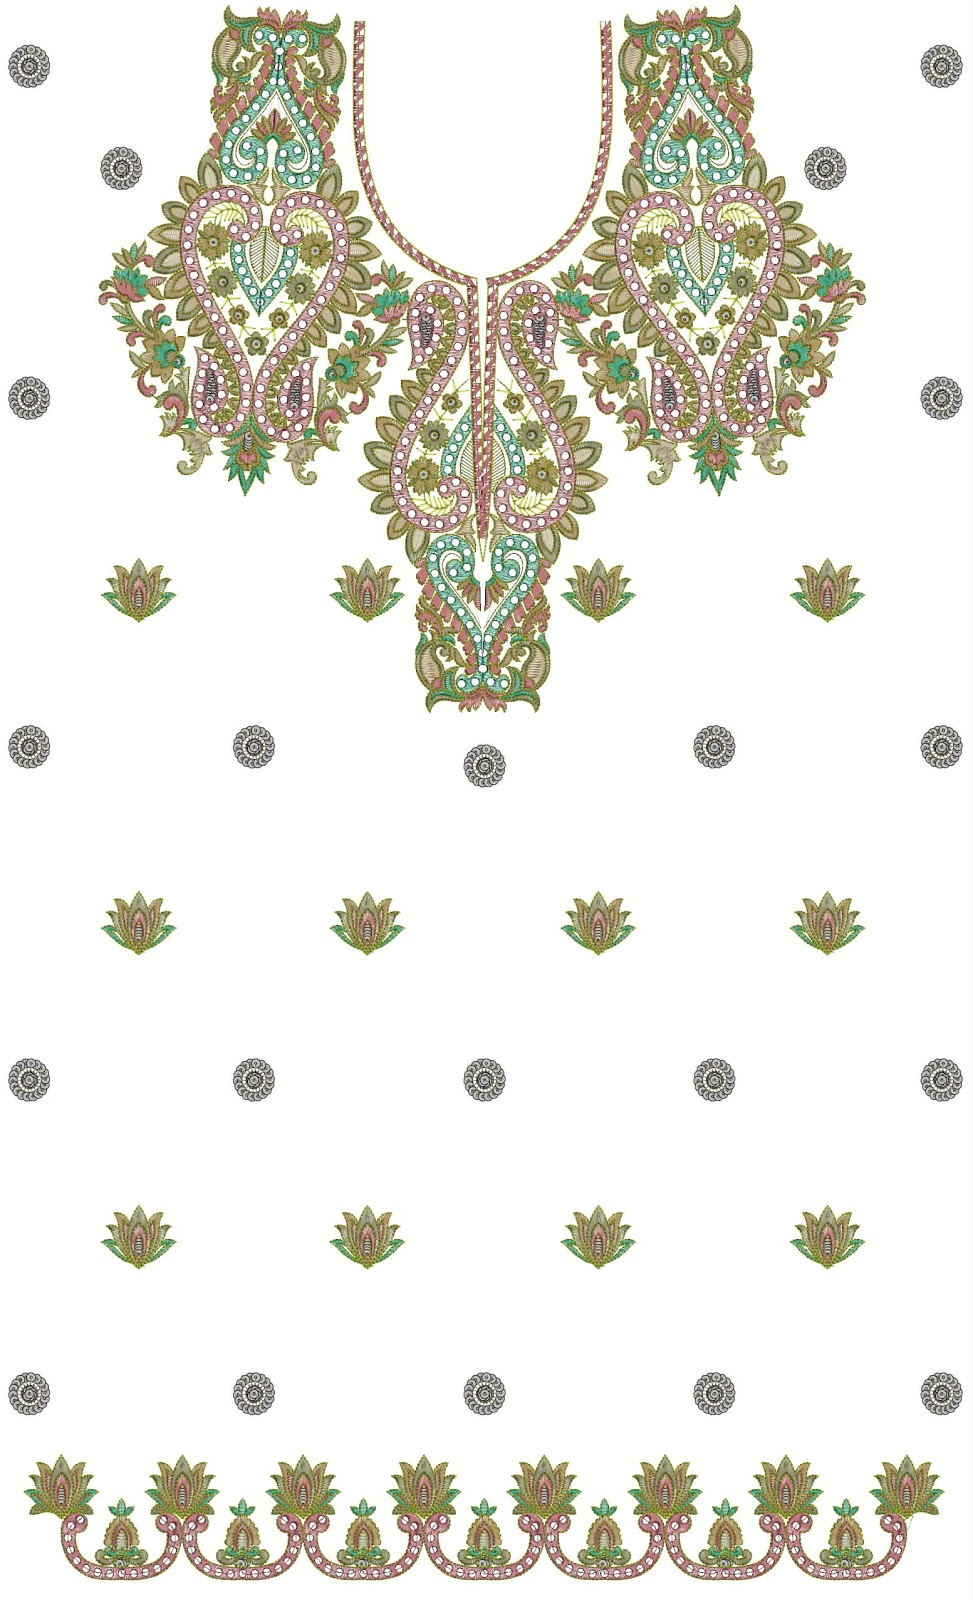 Embdesigntube full top dress embroidery design in emb format